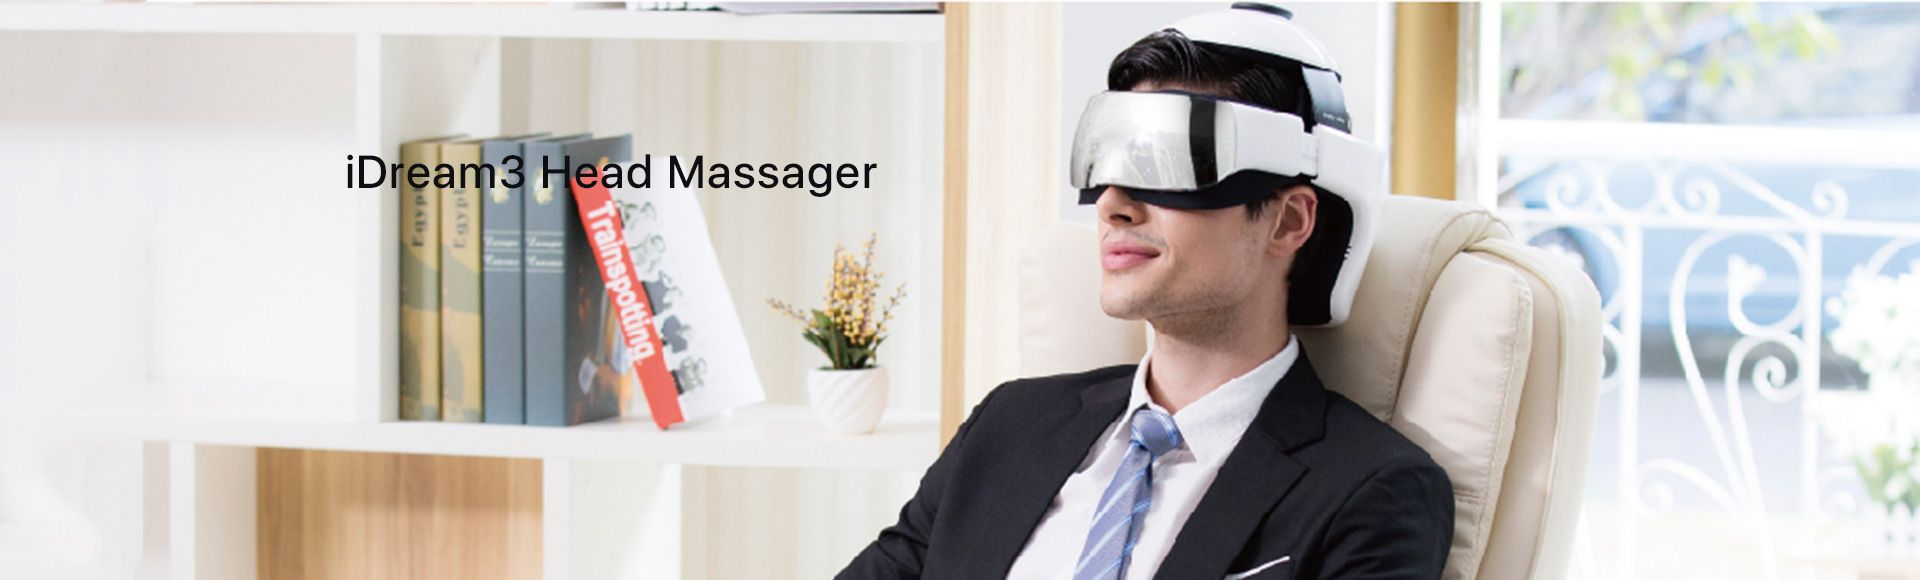 Breo iDream 3 Eye and Head Massager - Rechargeable music head massager, Wireless remote control, Air pressure vibration, Far infrared ray adjustable